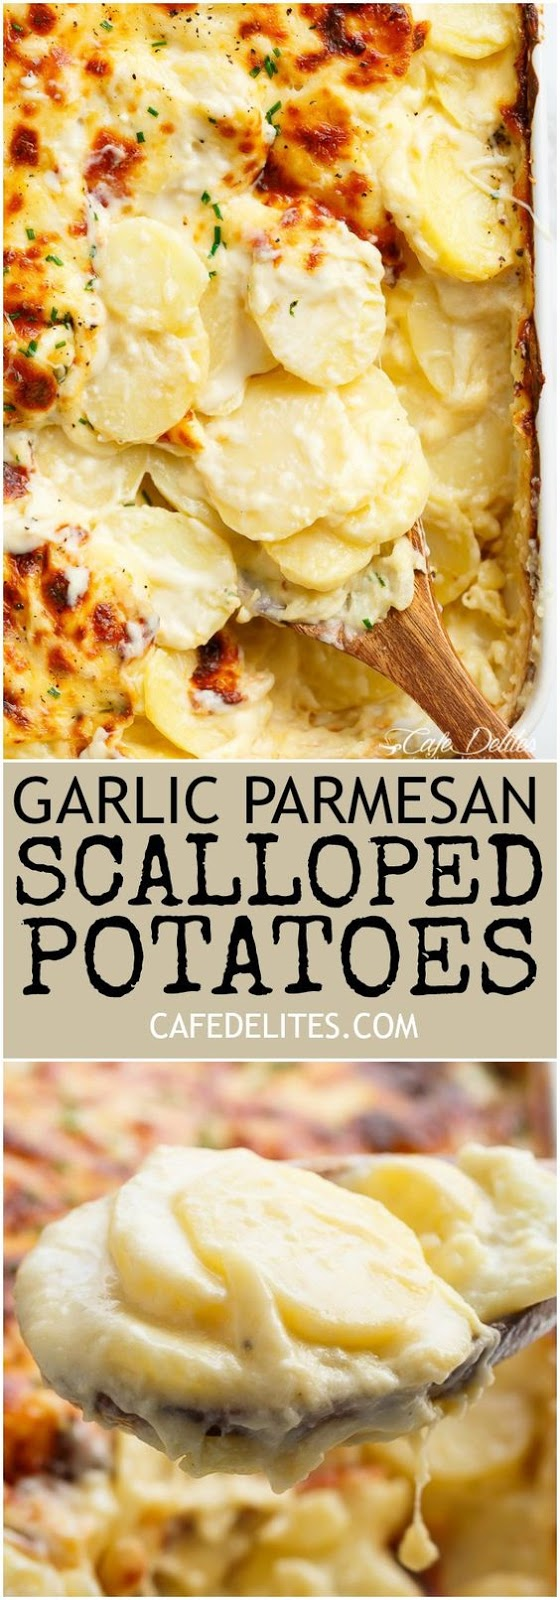 Deliciously cheesy scalloped potatoes are full of garlic flavour and parmesan cheese! Soft and tender potatoes smothered and enveloped in a thick and creamy garlic sauce, layered with mozzarella cheese for a cheesy string then crisped with your oven broiler or grill to get a crispy, cheesy top layer.